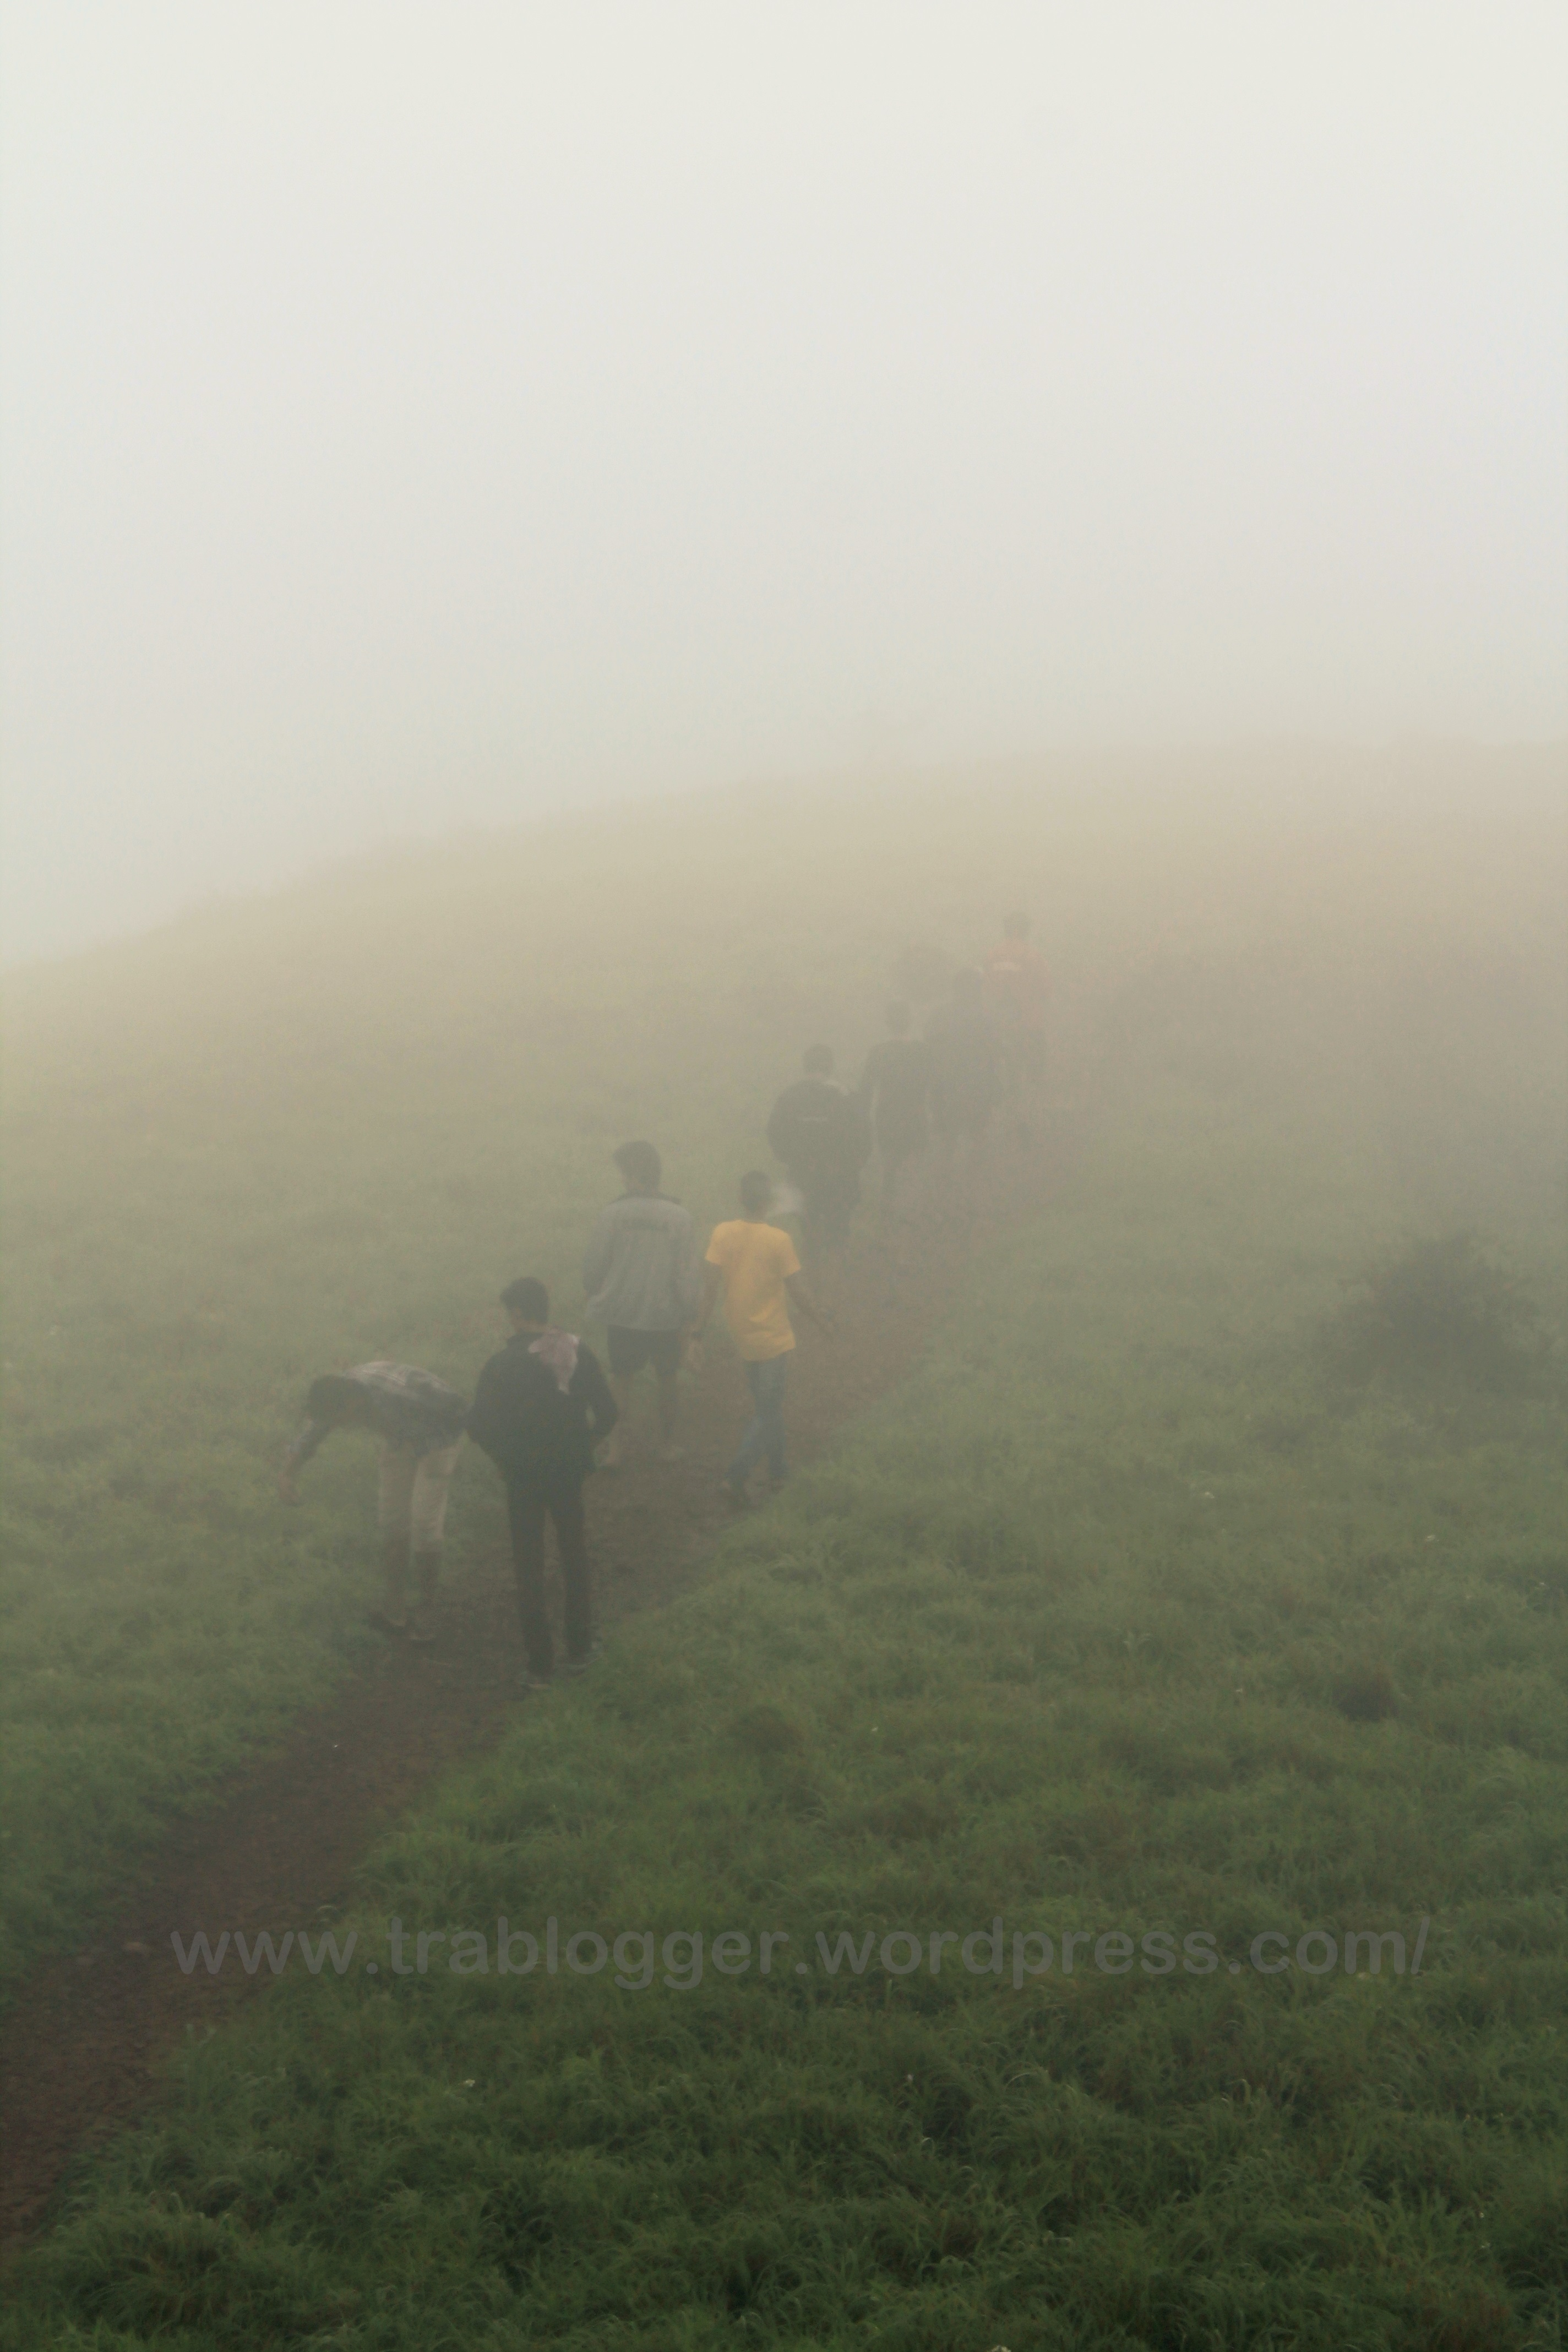 the other vaithalmala trekkers!